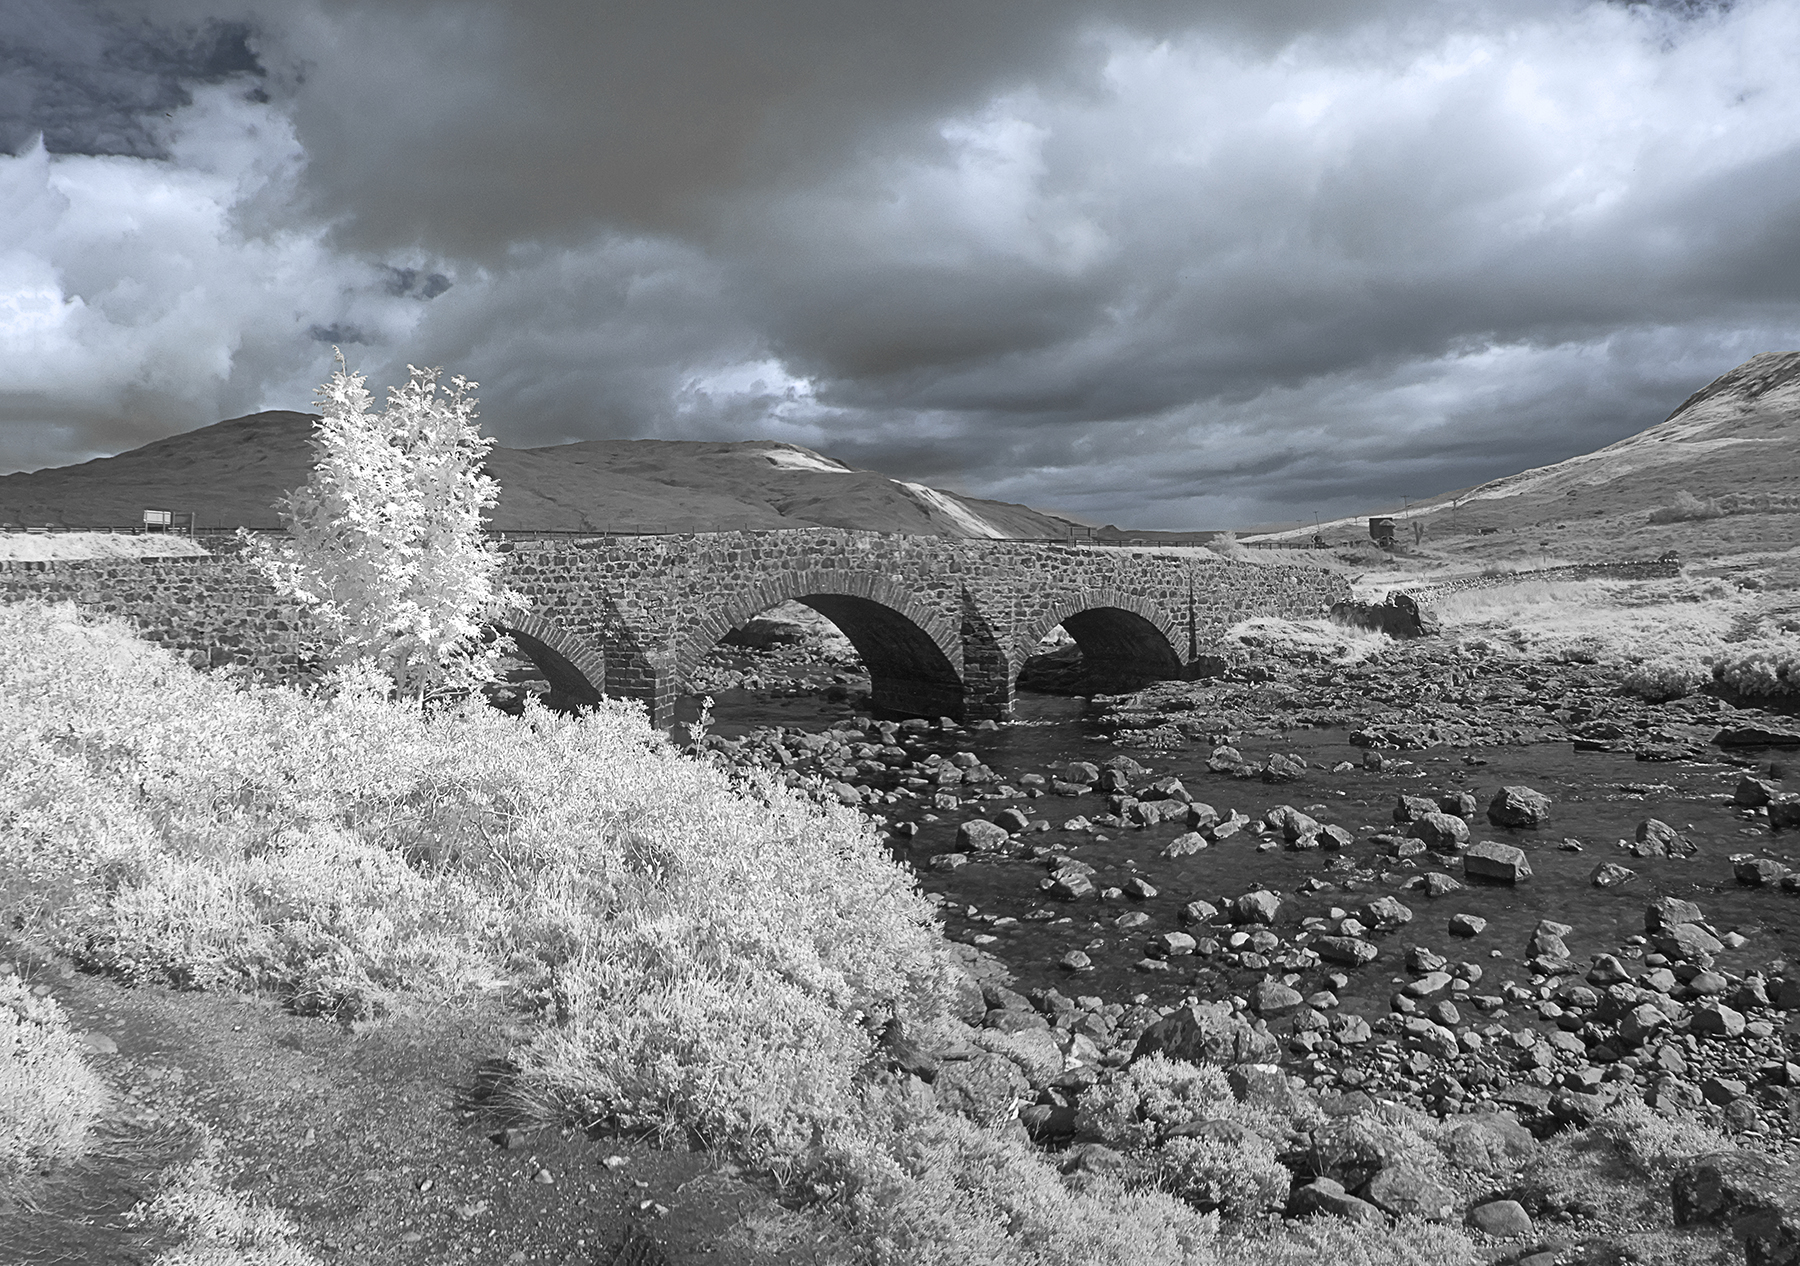 Bridge at Sligachan Skye 3429 - 3420